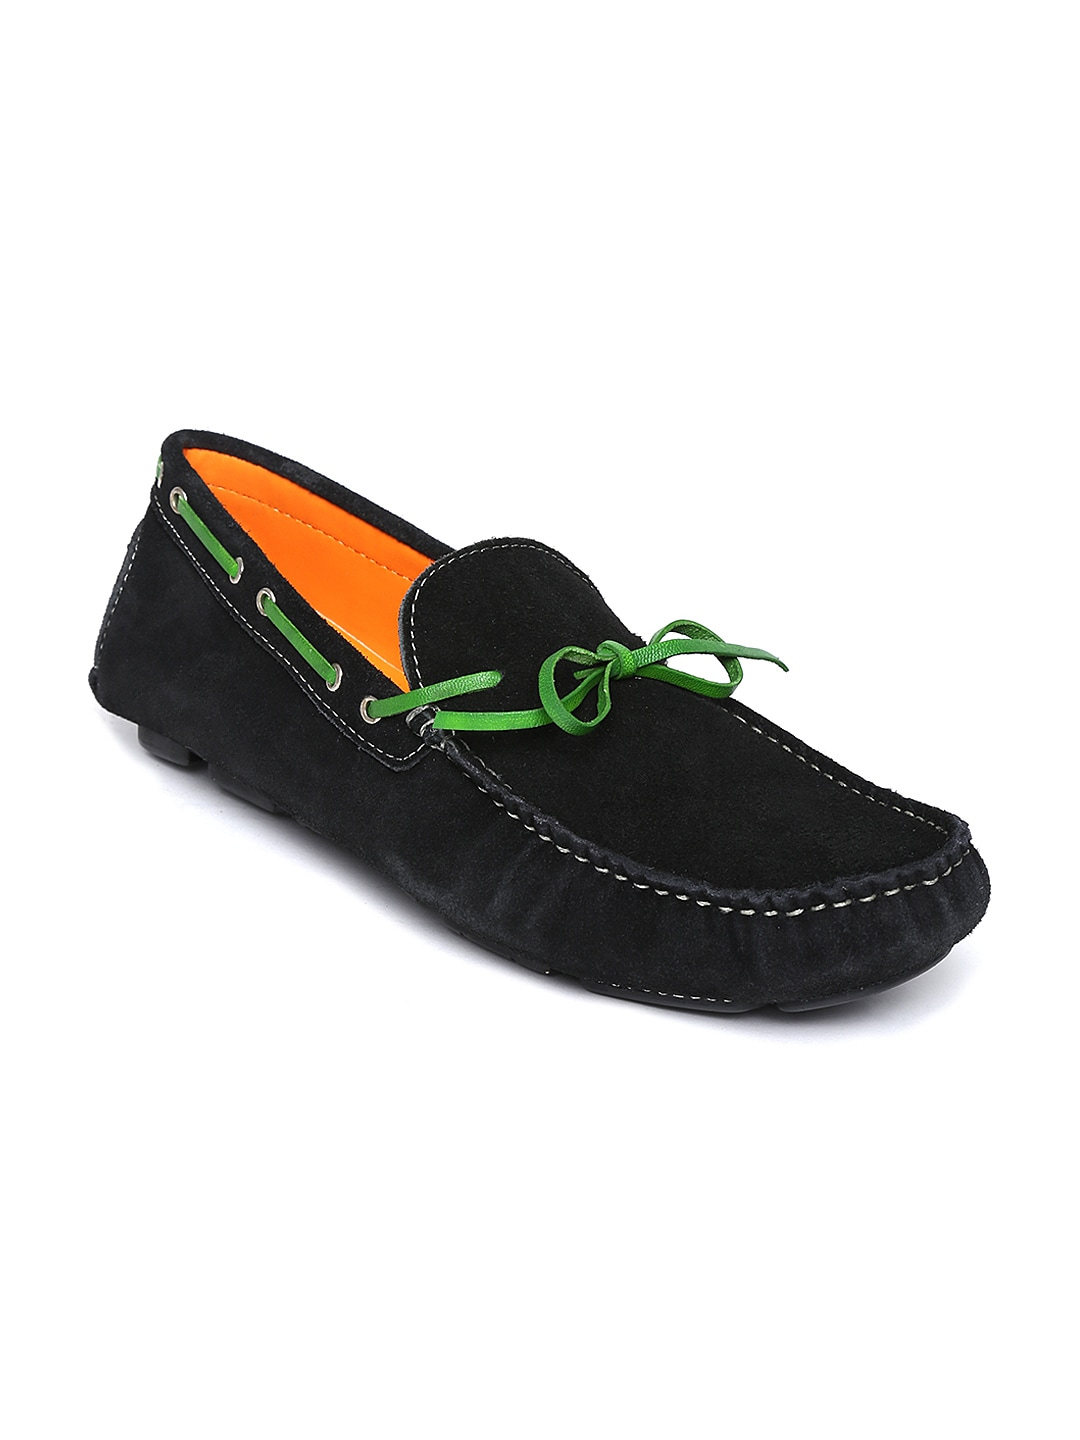 Famozi Famozi Men Black Suede Boat Shoes